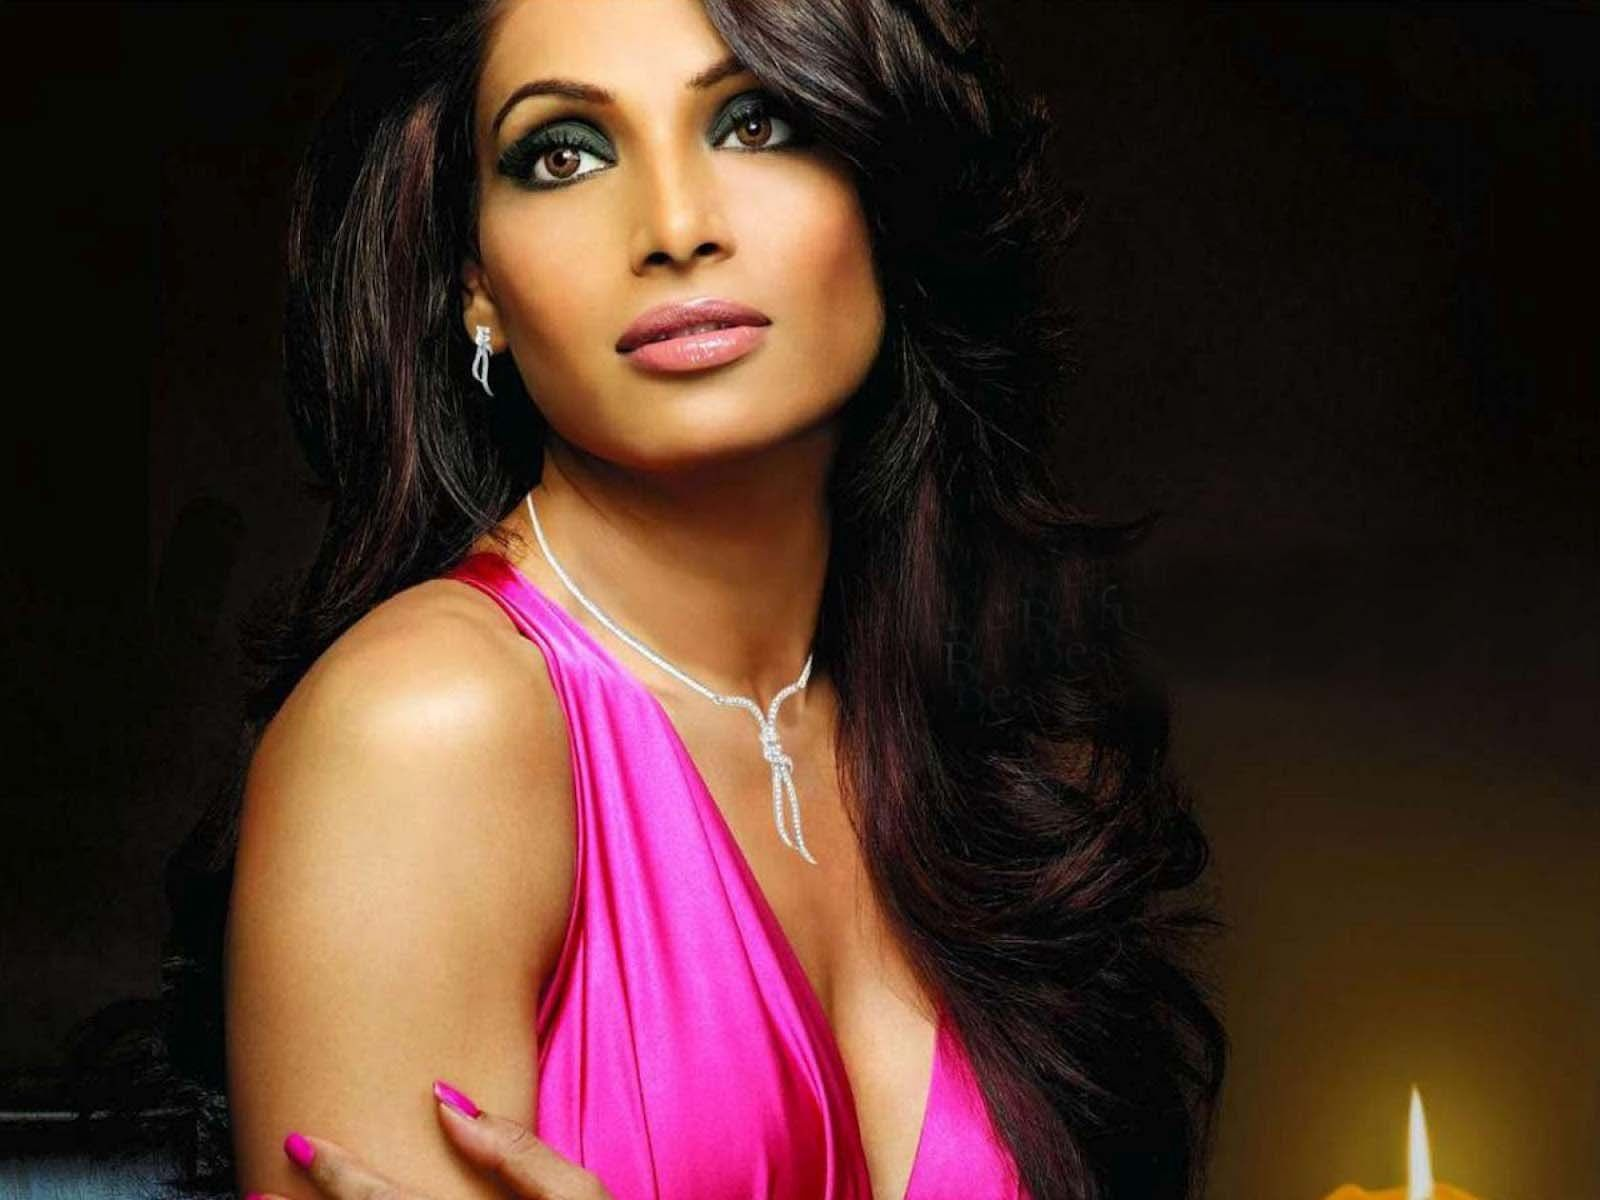 Beautiful Bipasha Basu Style Free Mobile Desktop Hd Background Pictures